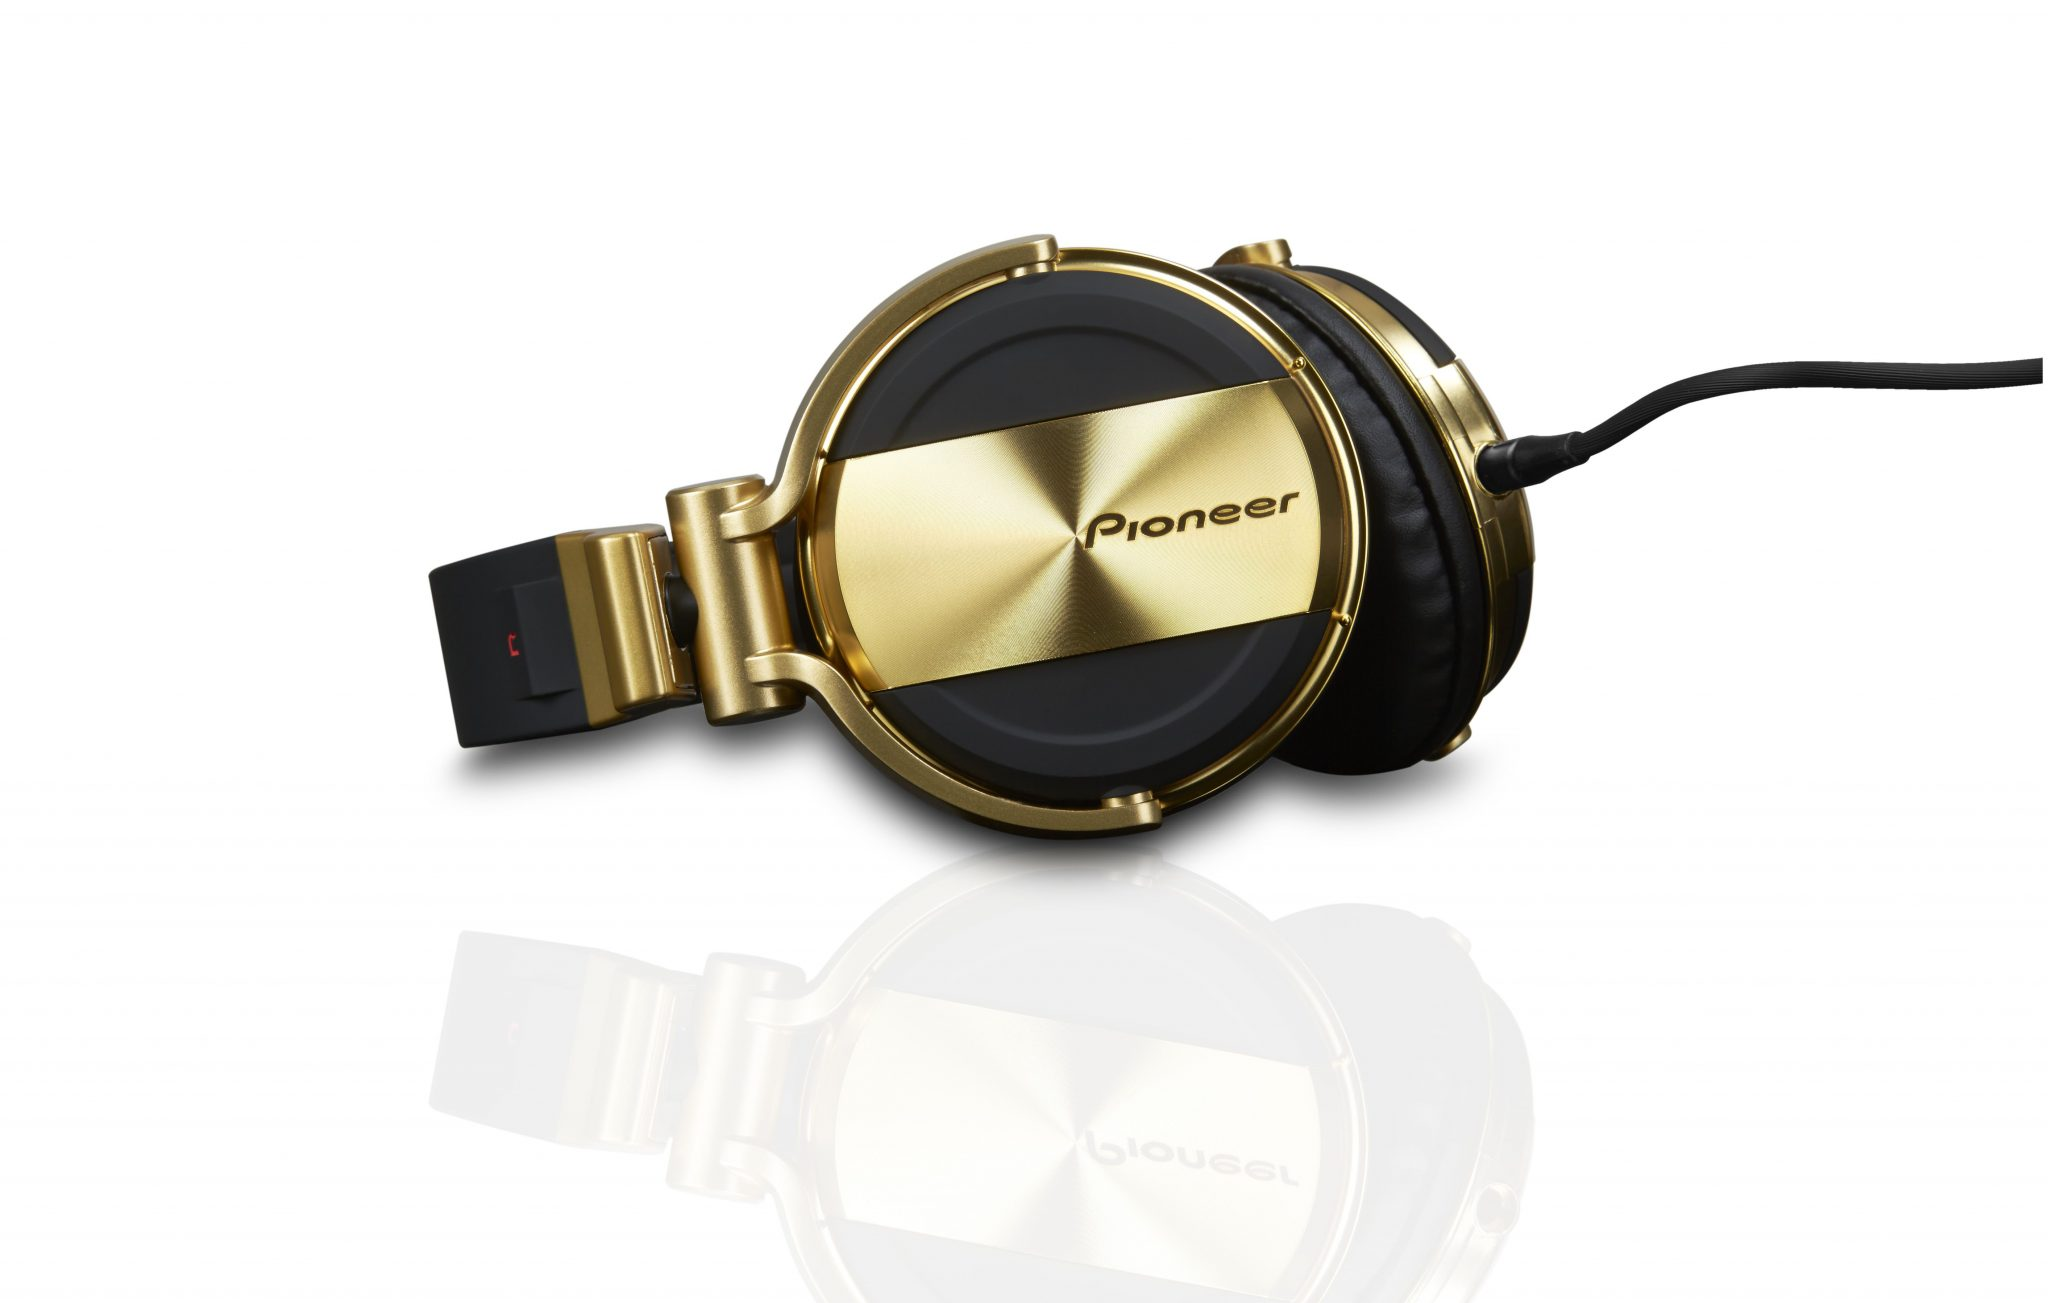 Pioneer s Gold Details